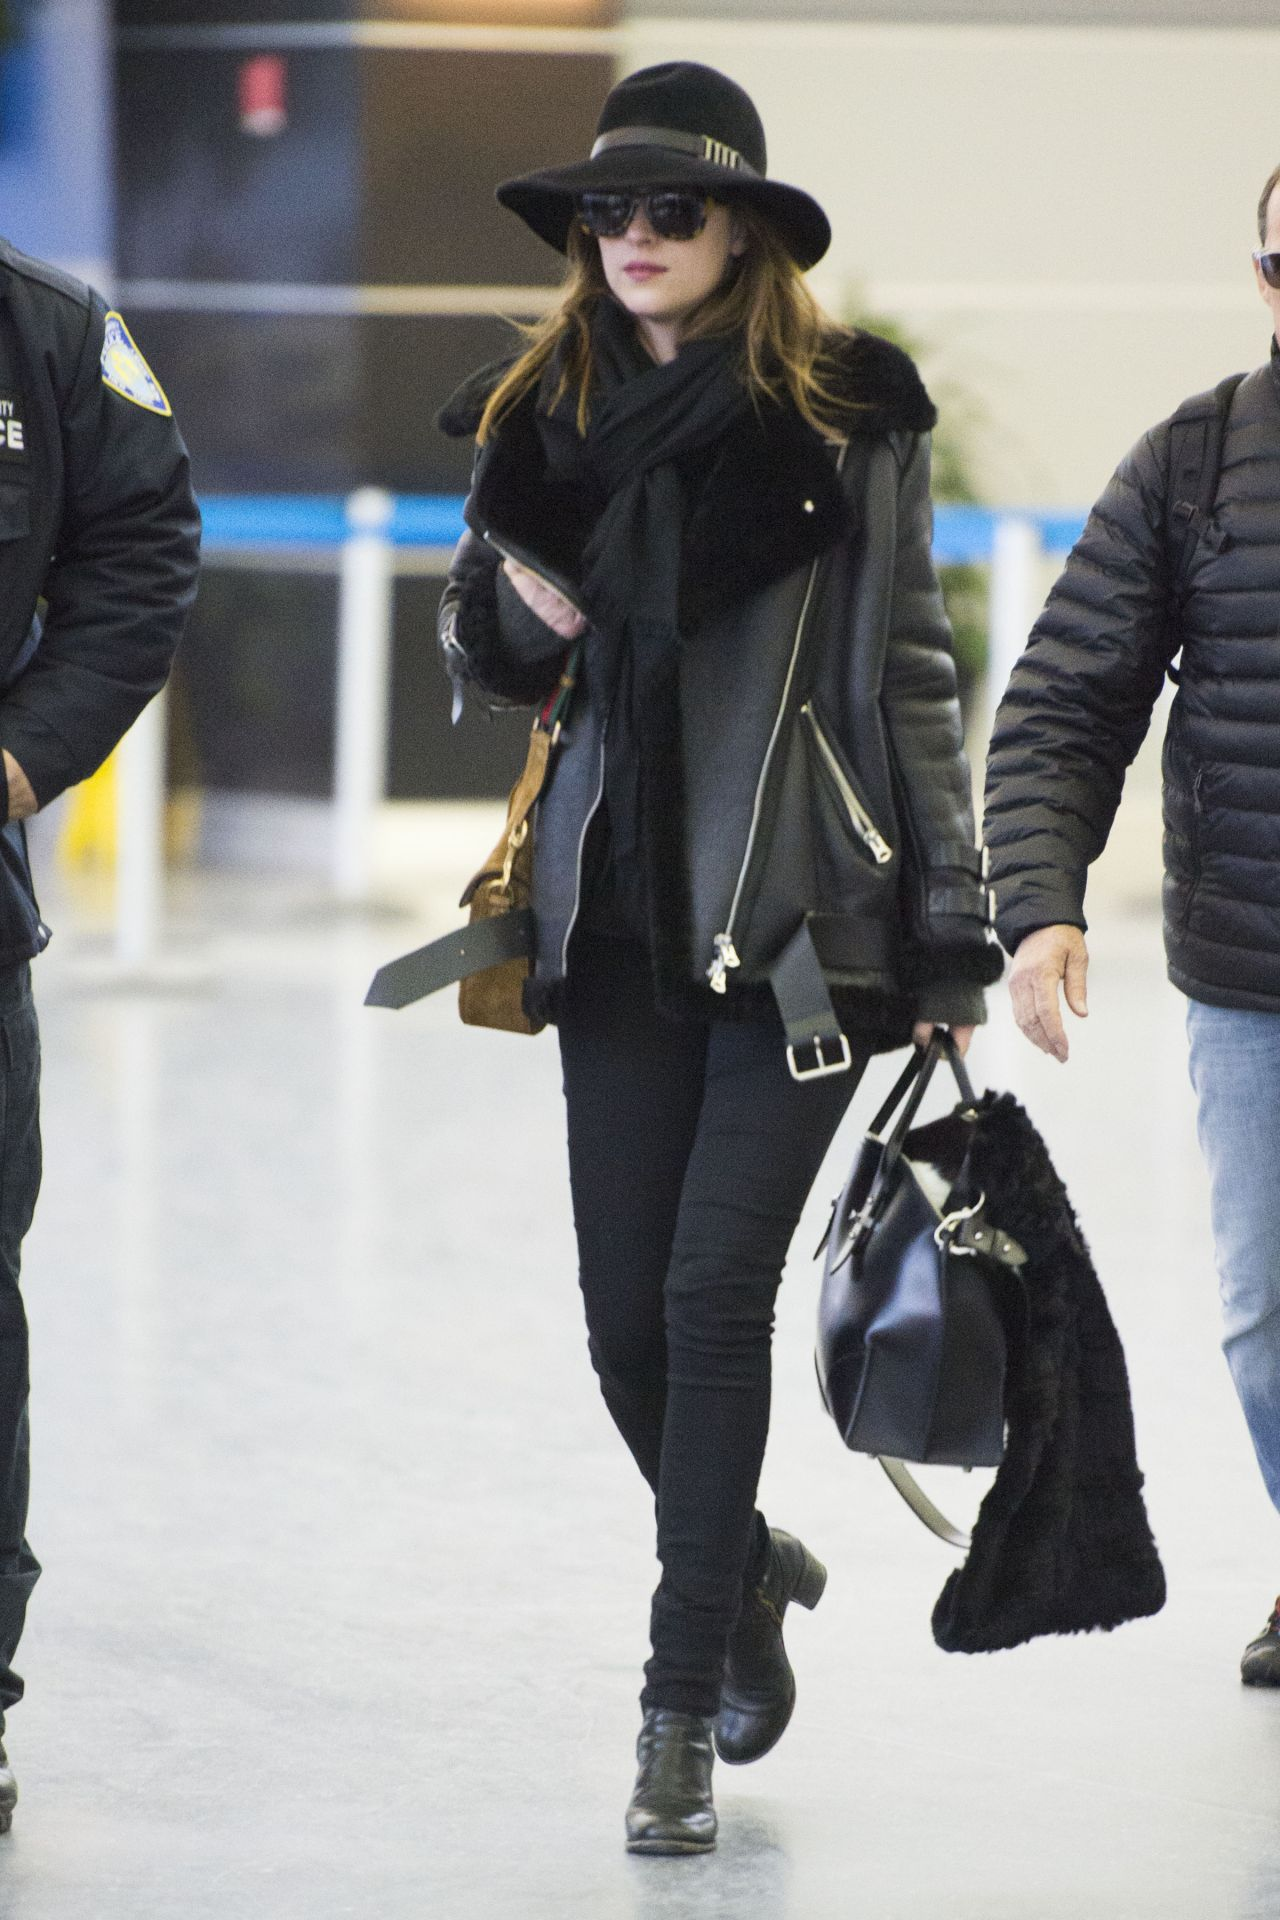 Dakota Johnson Style - at JFK Airport in New York City, Feb. 2015